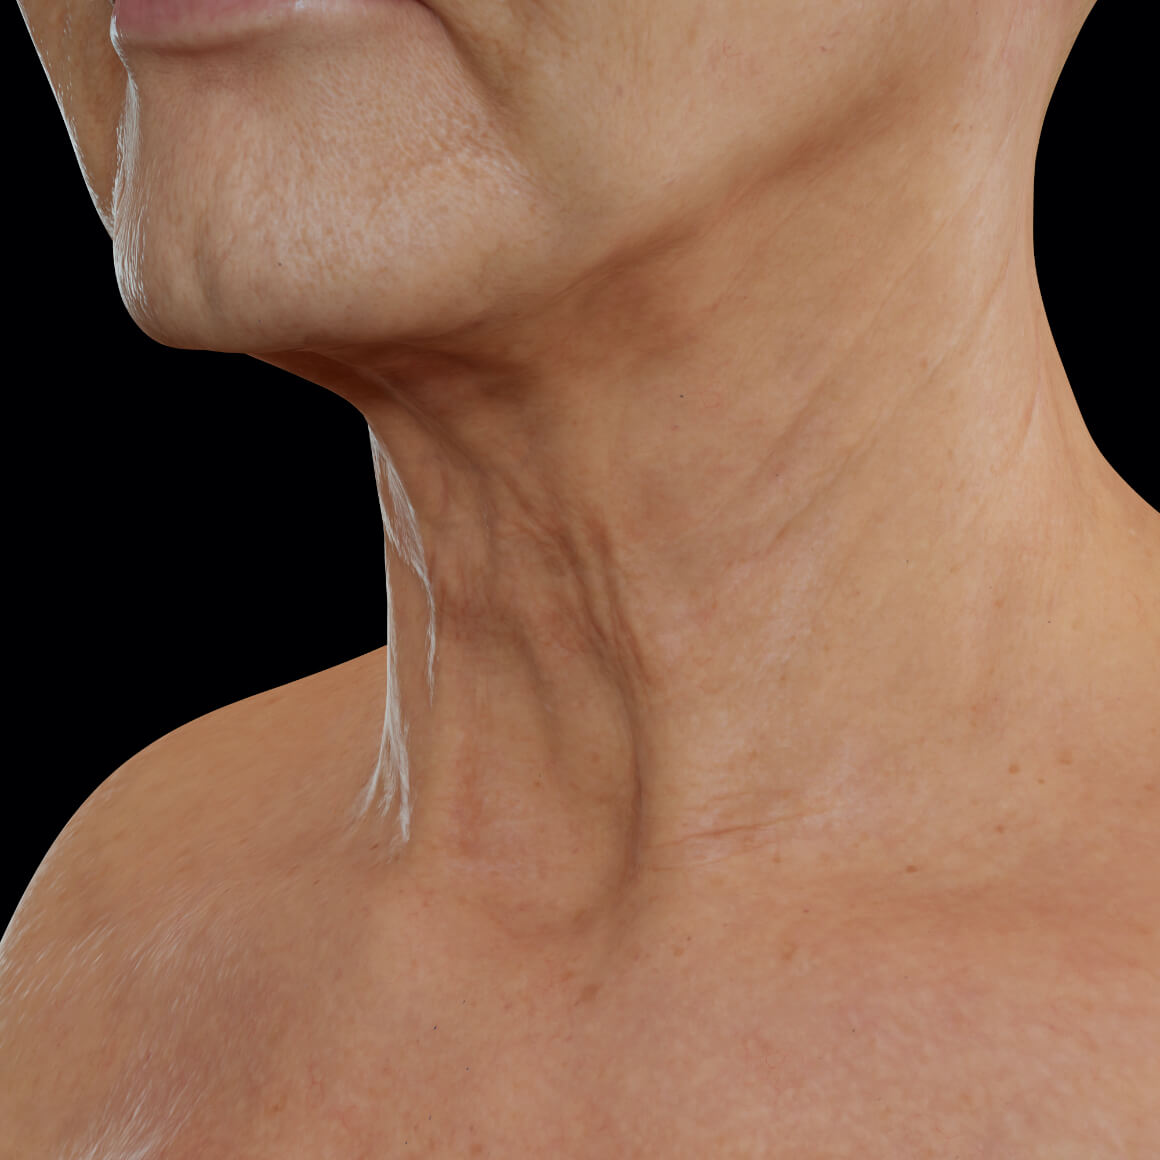 Female patient from Clinique Chloé positioned at an angle after Tight Sculpting laser treatments for neck skin tightening